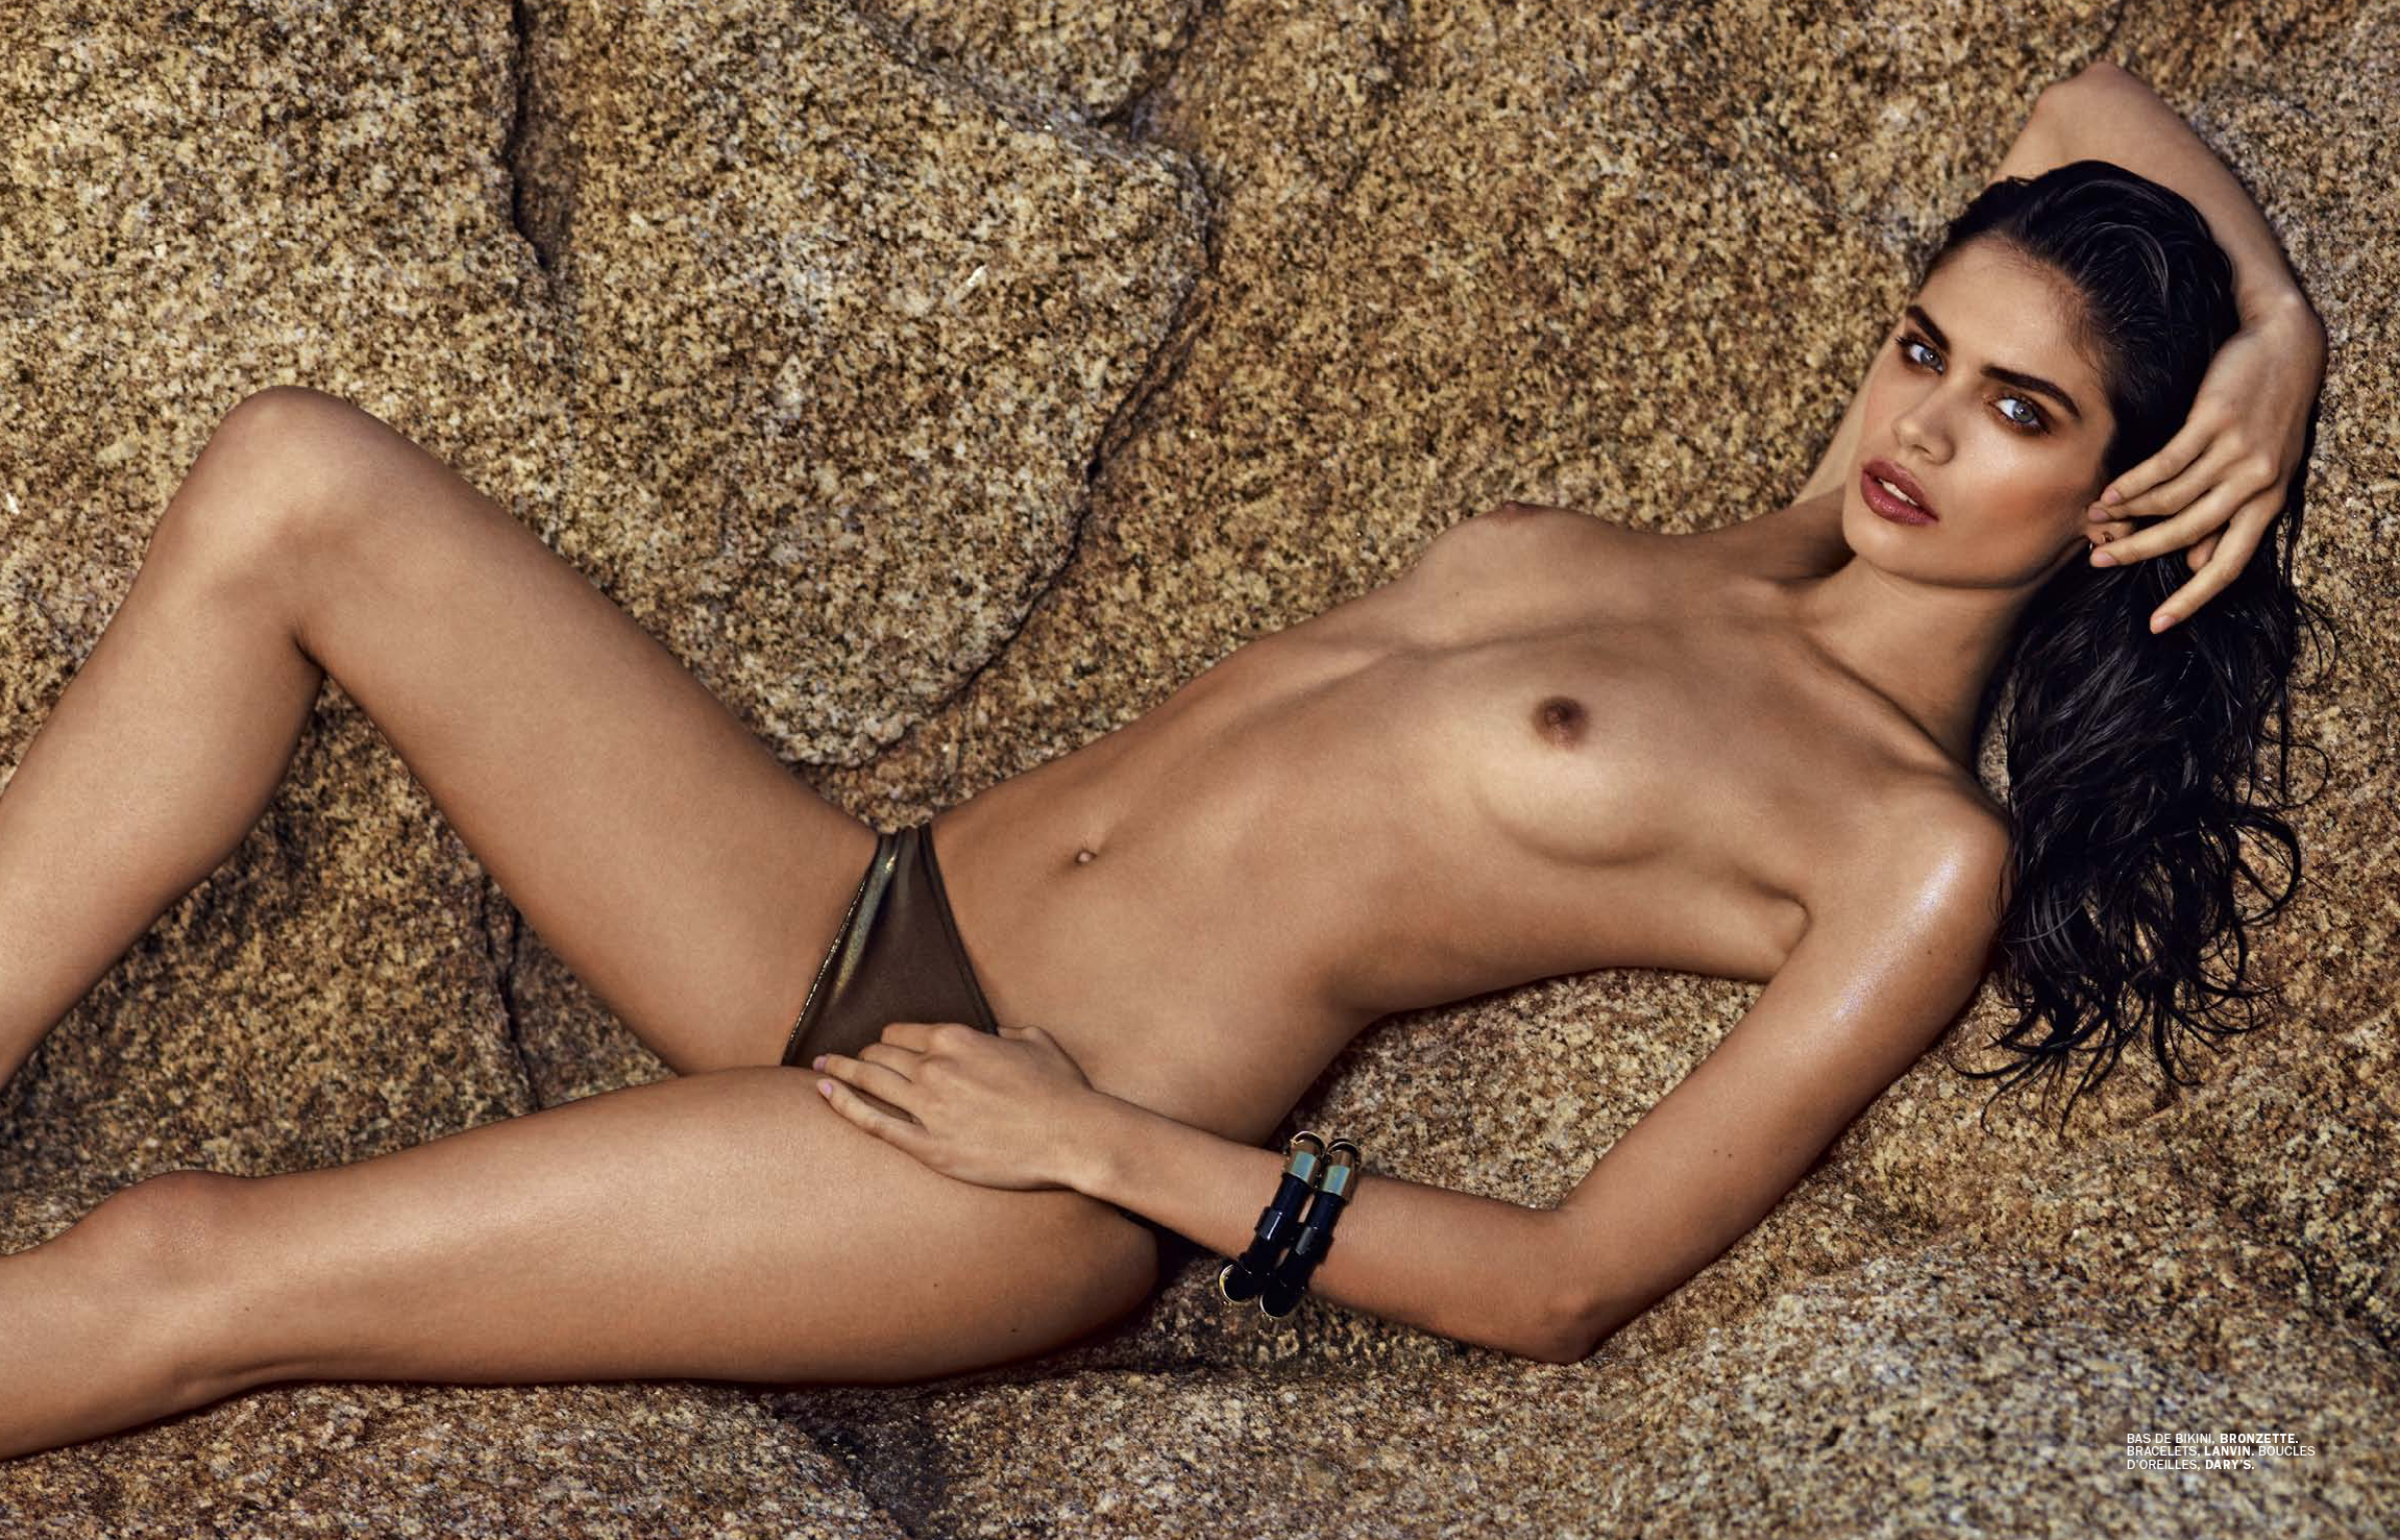 https://bewitchmag.files.wordpress.com/2014/07/sara-sampaio-by-mark-segal-for-lui-magazine-julyaugust-2014-3.jpg